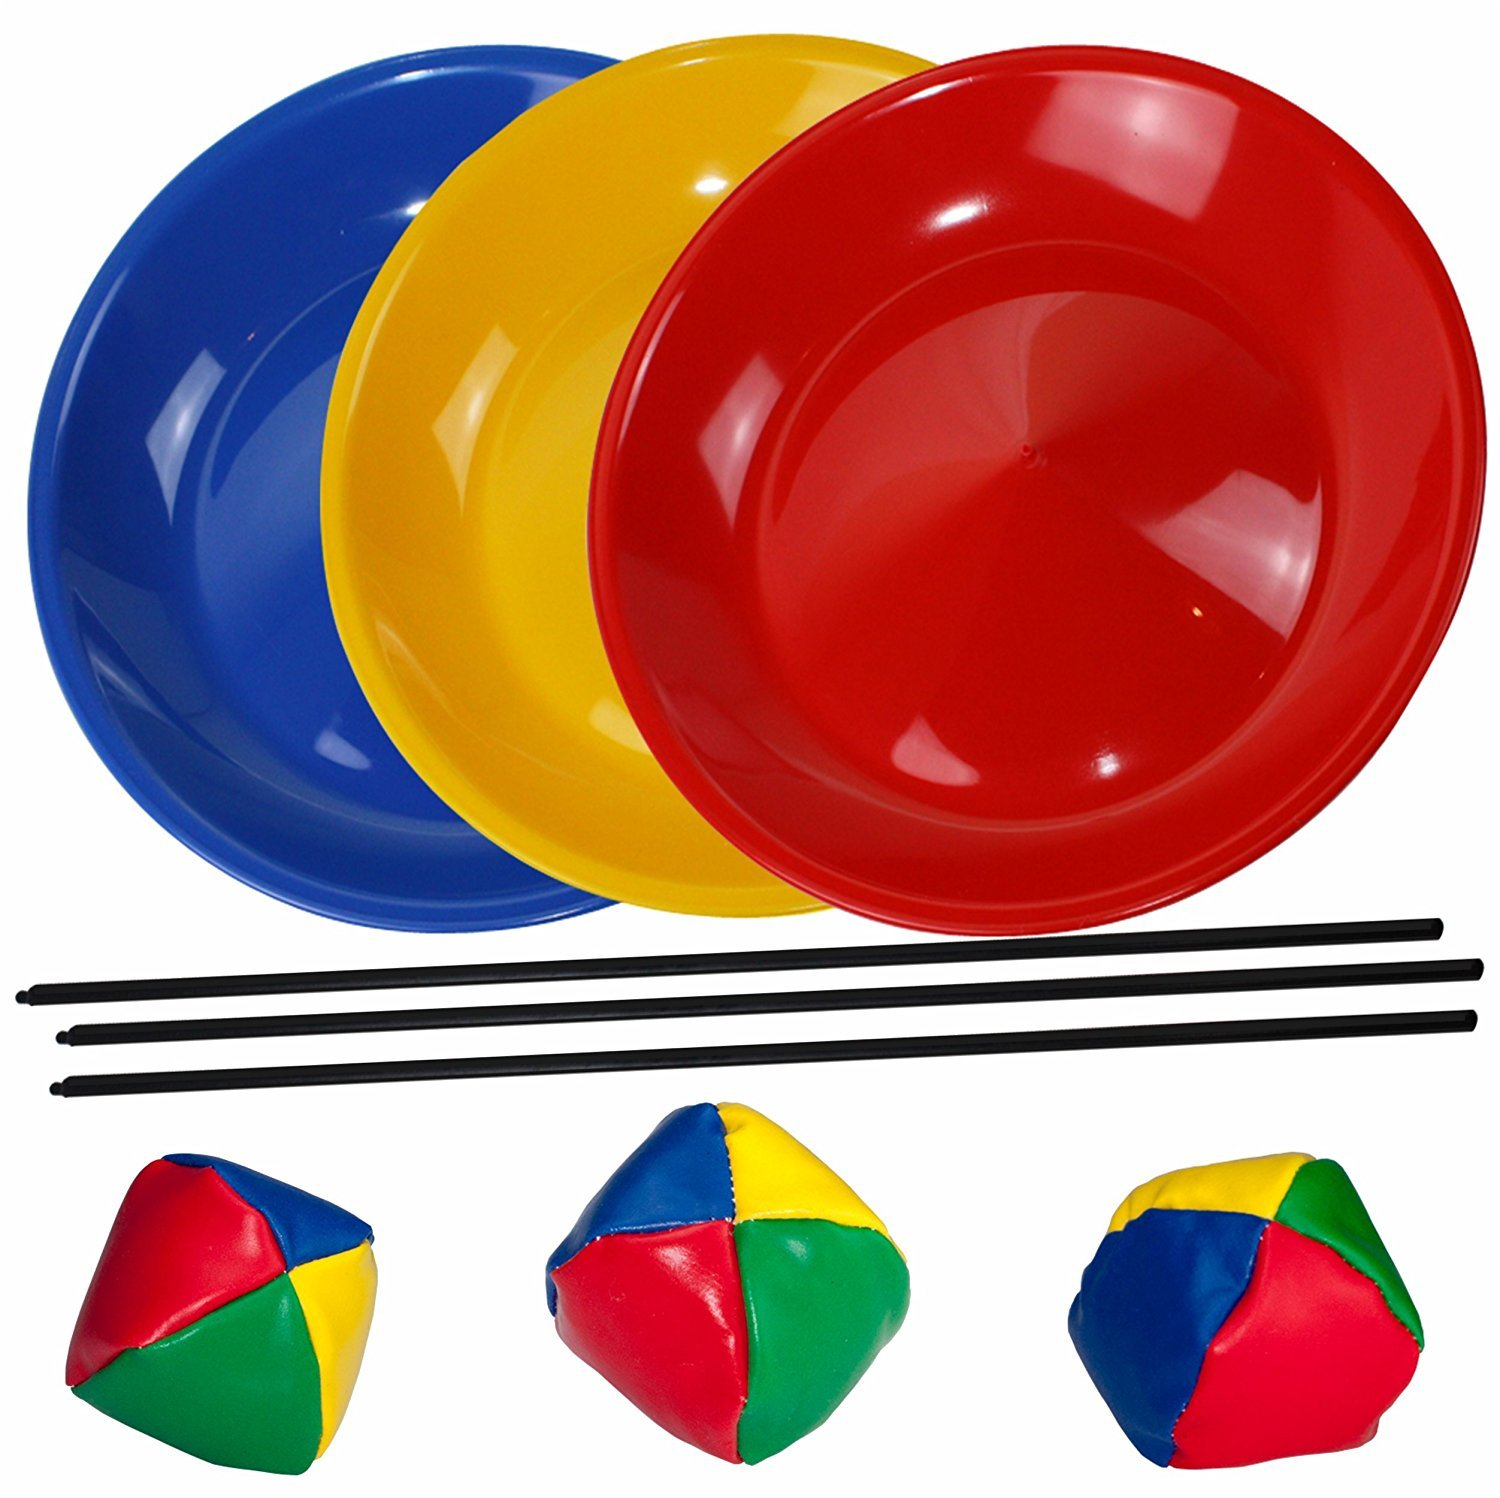 SchwabMarken Juggling Set, 3 Spinning / Juggling Plates with Plastic Sticks and Juggling Balls, Mixed Colours